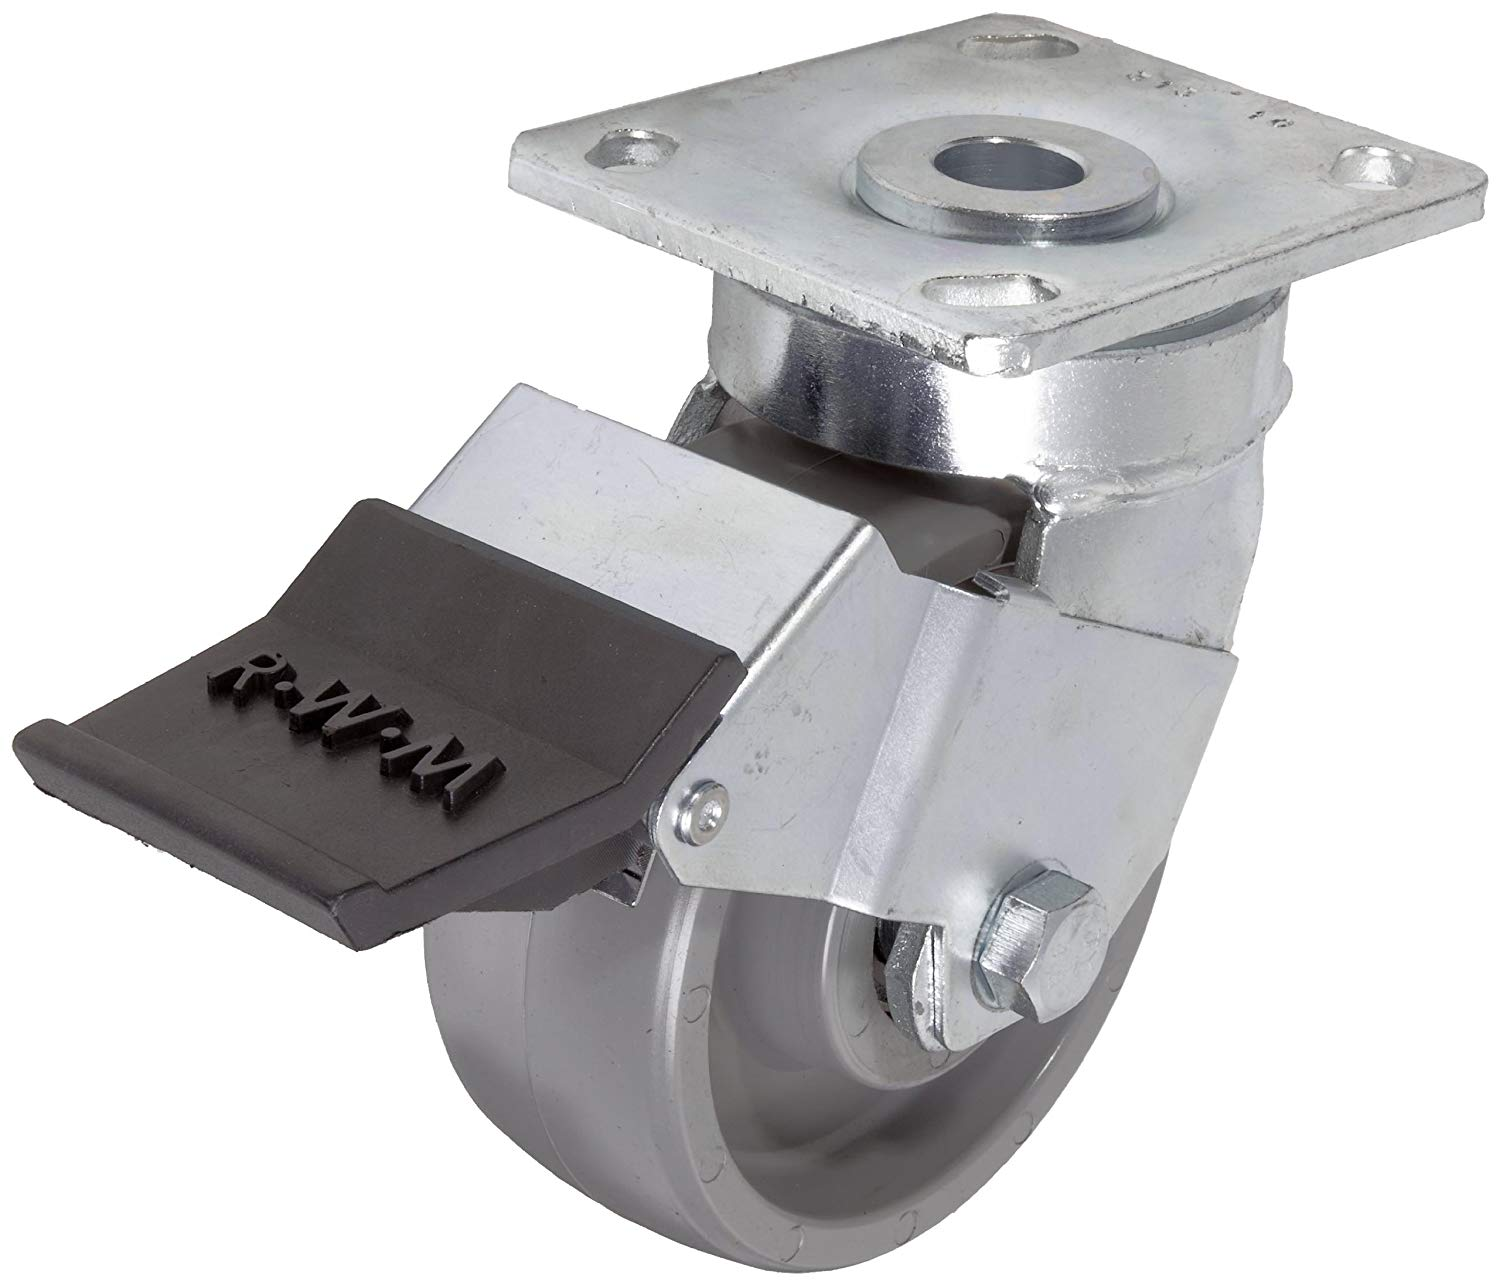 "RWM Casters 65 Series Plate Caster, Swivel with Installable Face Contact Brake, Kingpinless, Elastomer Wheel, Ball Bearing, 1200 lbs Capacity, 5"" Wheel Dia, 2"" Wheel Width, 6-1/2"" Mount Height, 4-1/2"" Plate Length, 4"" Plate Width"